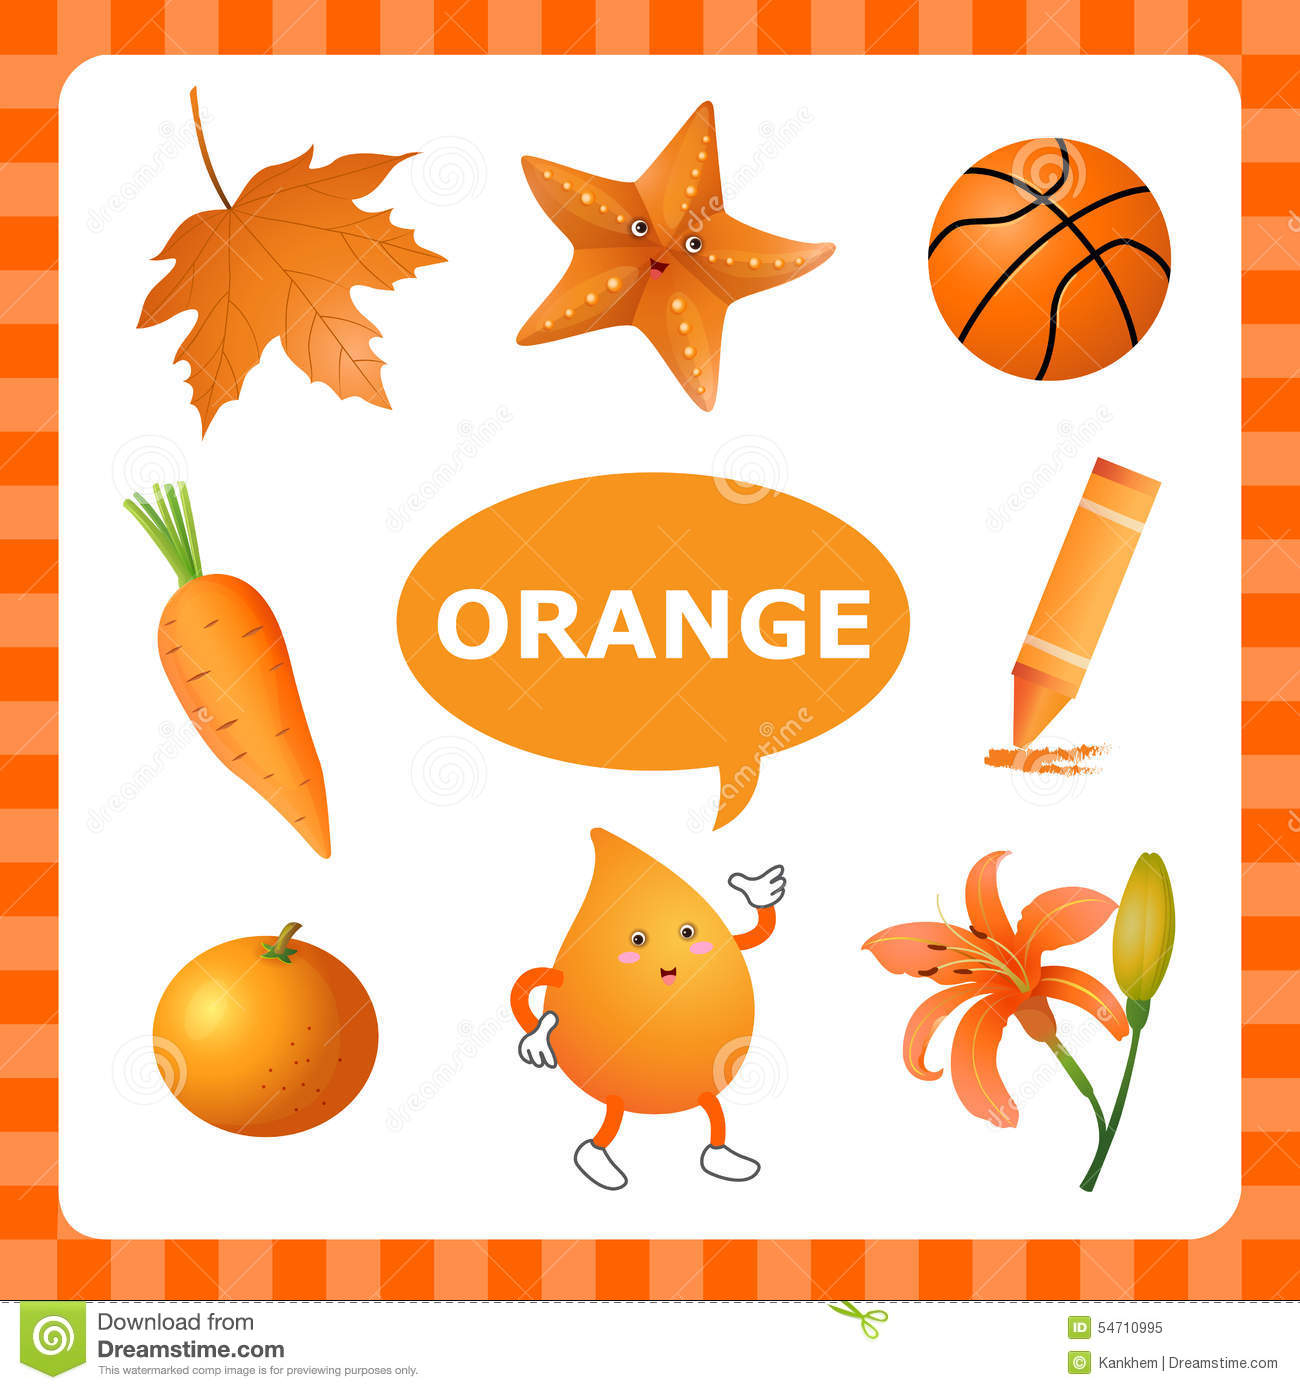 Learning Orangecolor Stock Vector